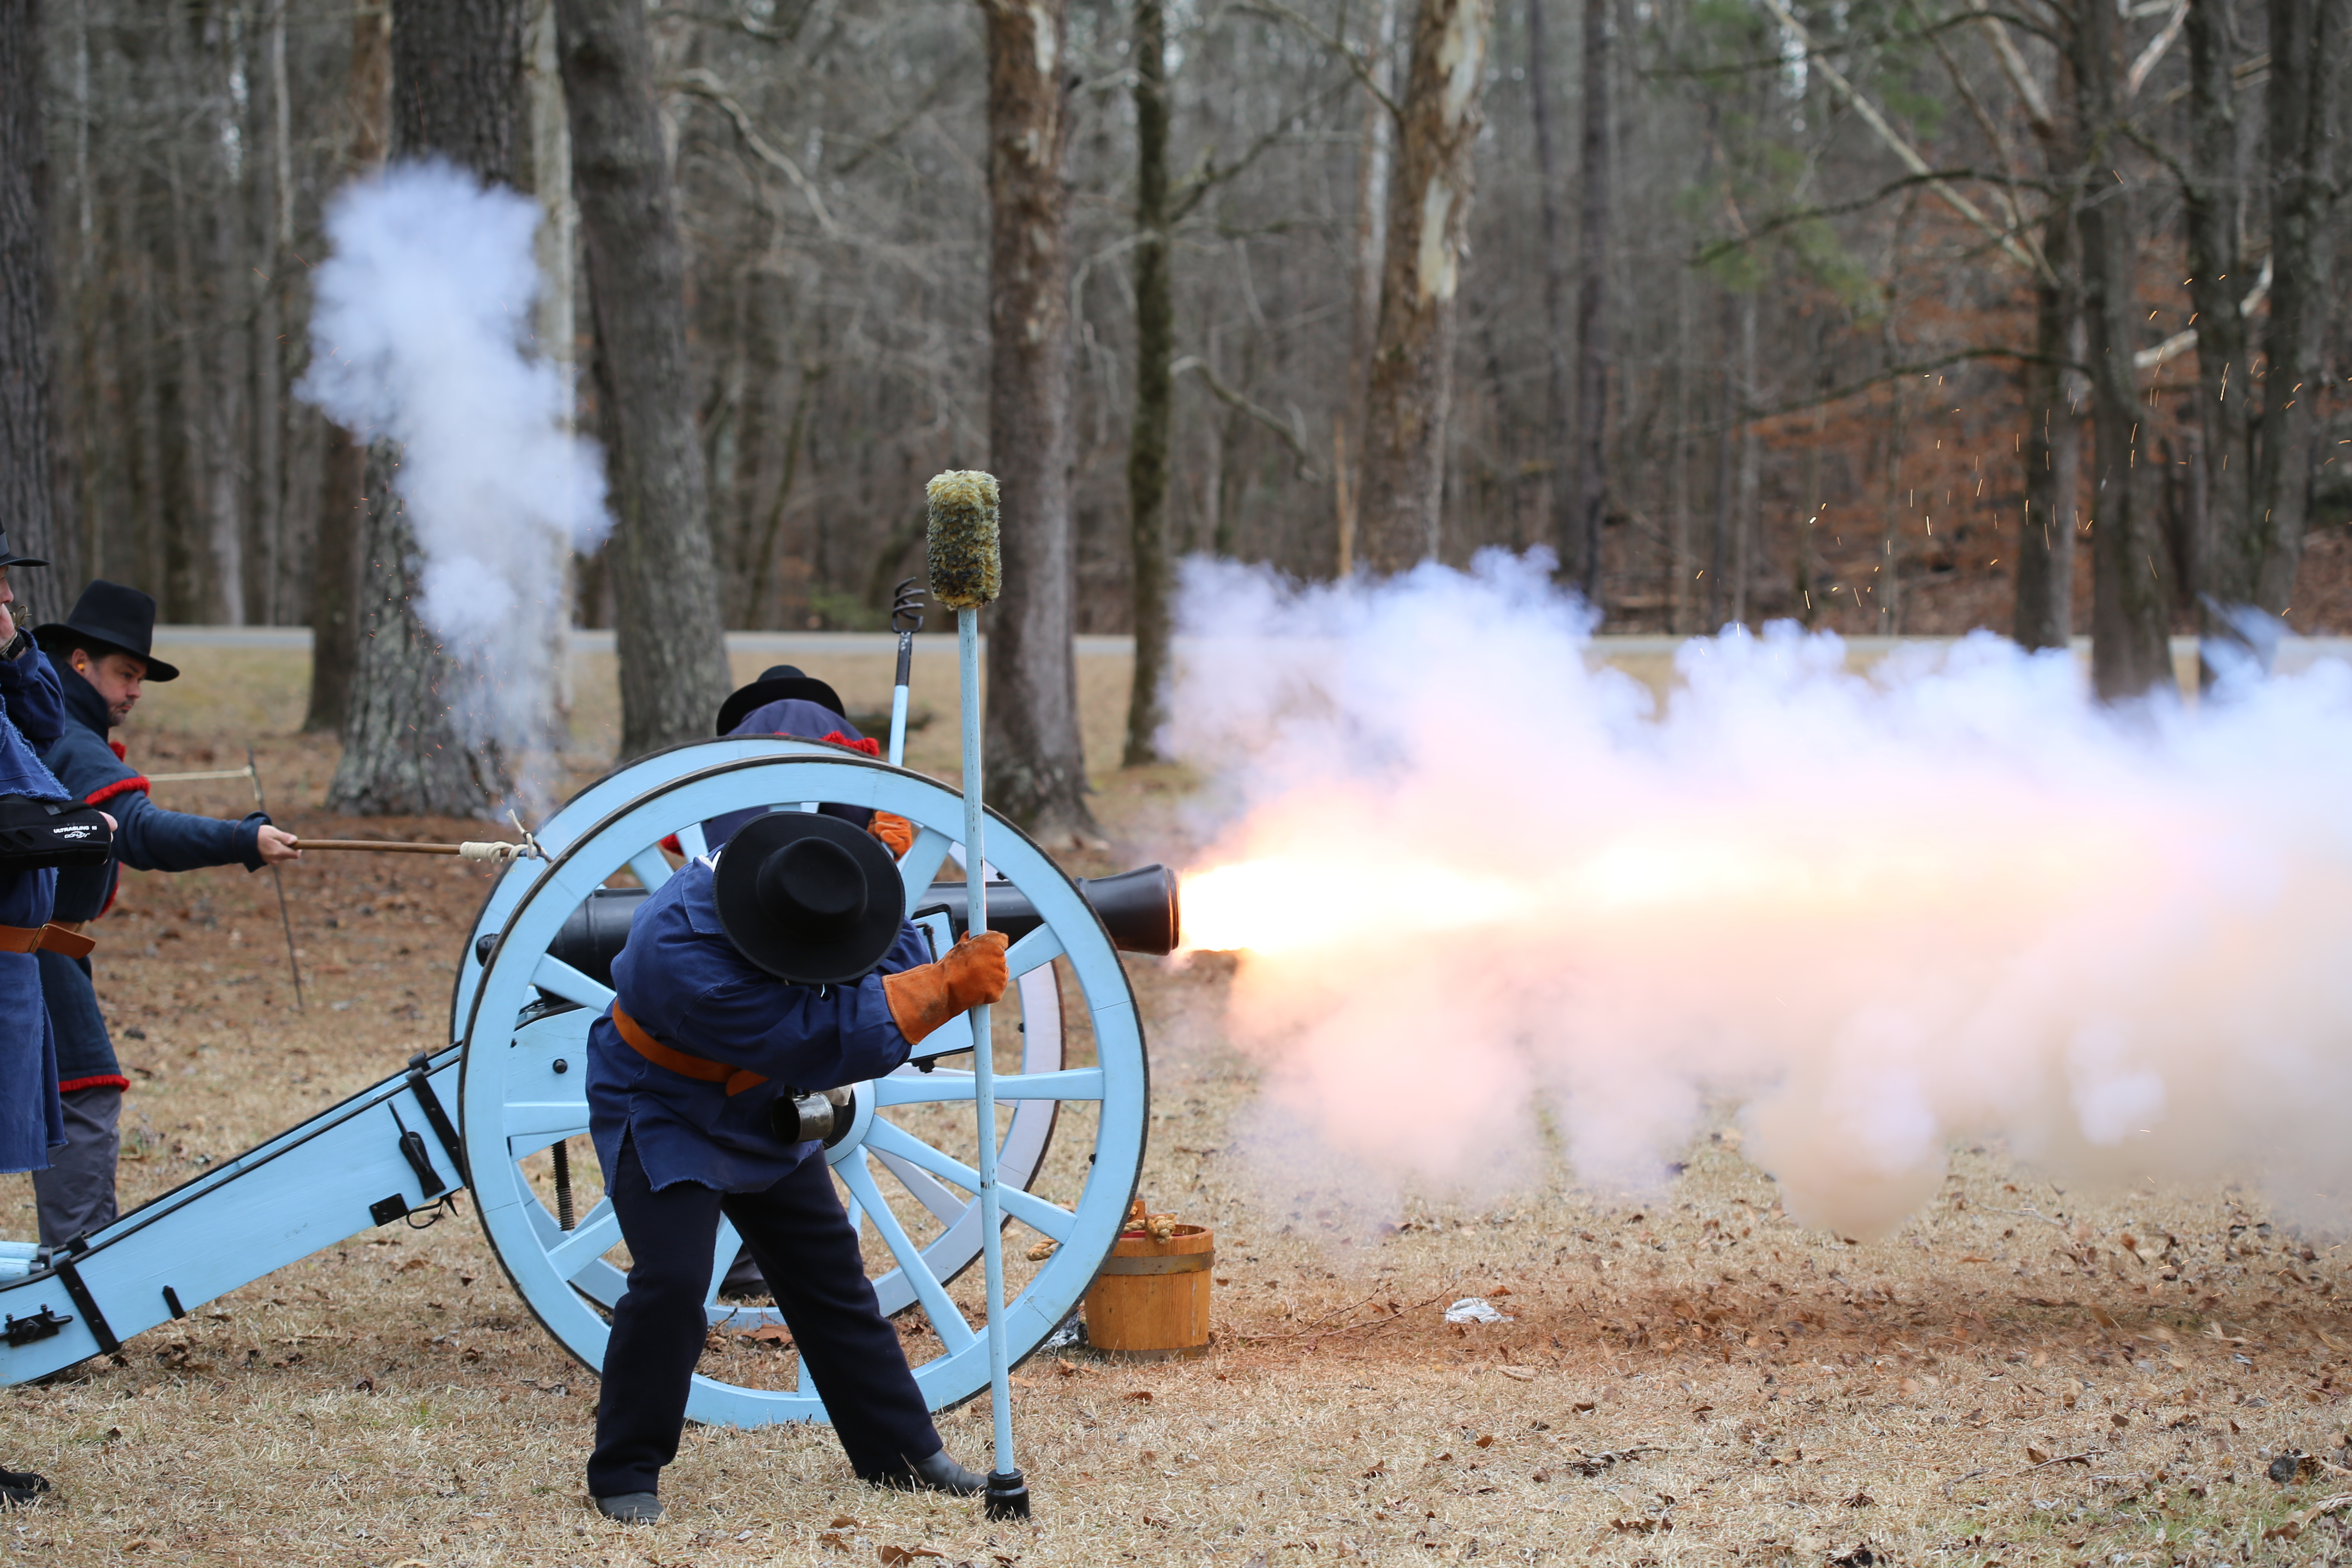 men in period uniforms shooting cannon; smoke and fire coming out of barrel